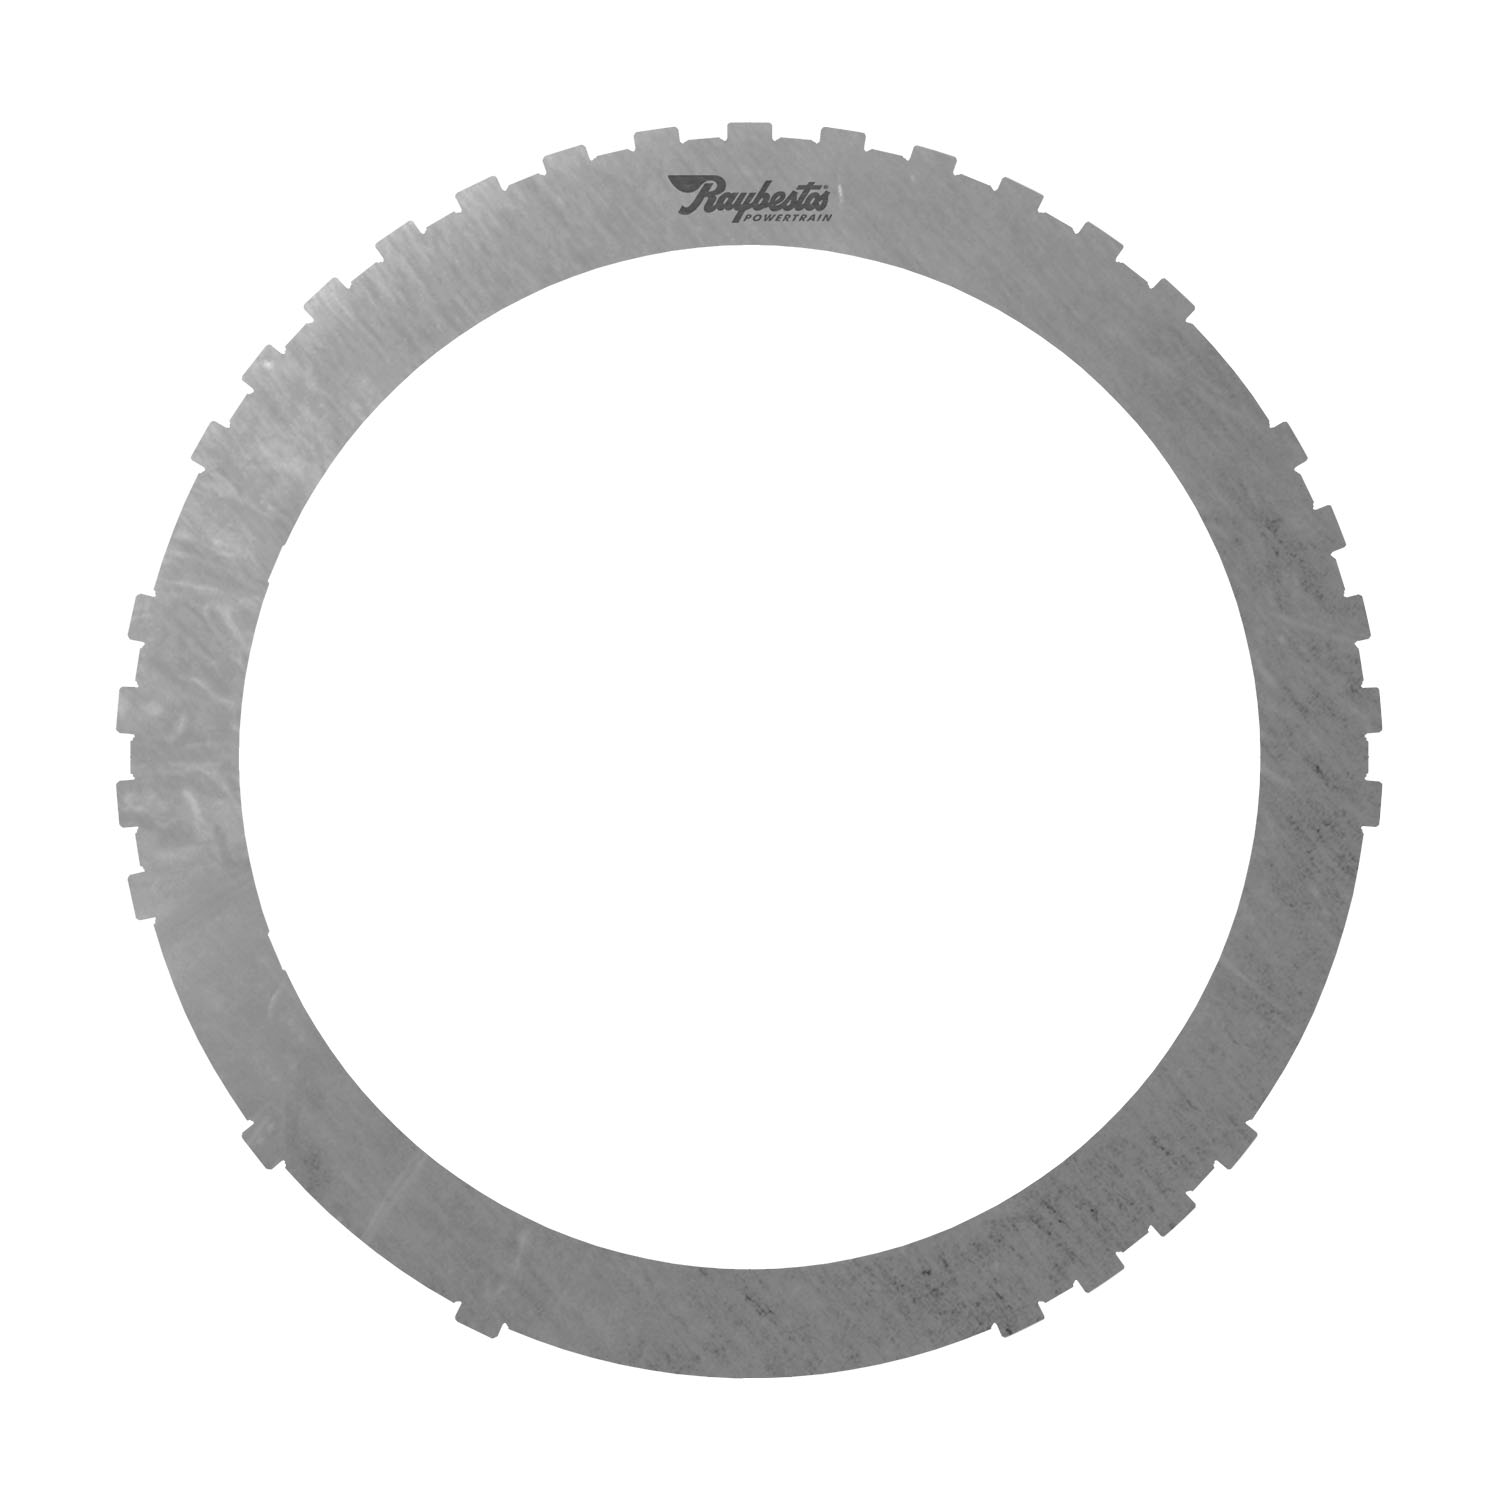 10R60 A Clutch Thick Bottom Steel Clutch Plate